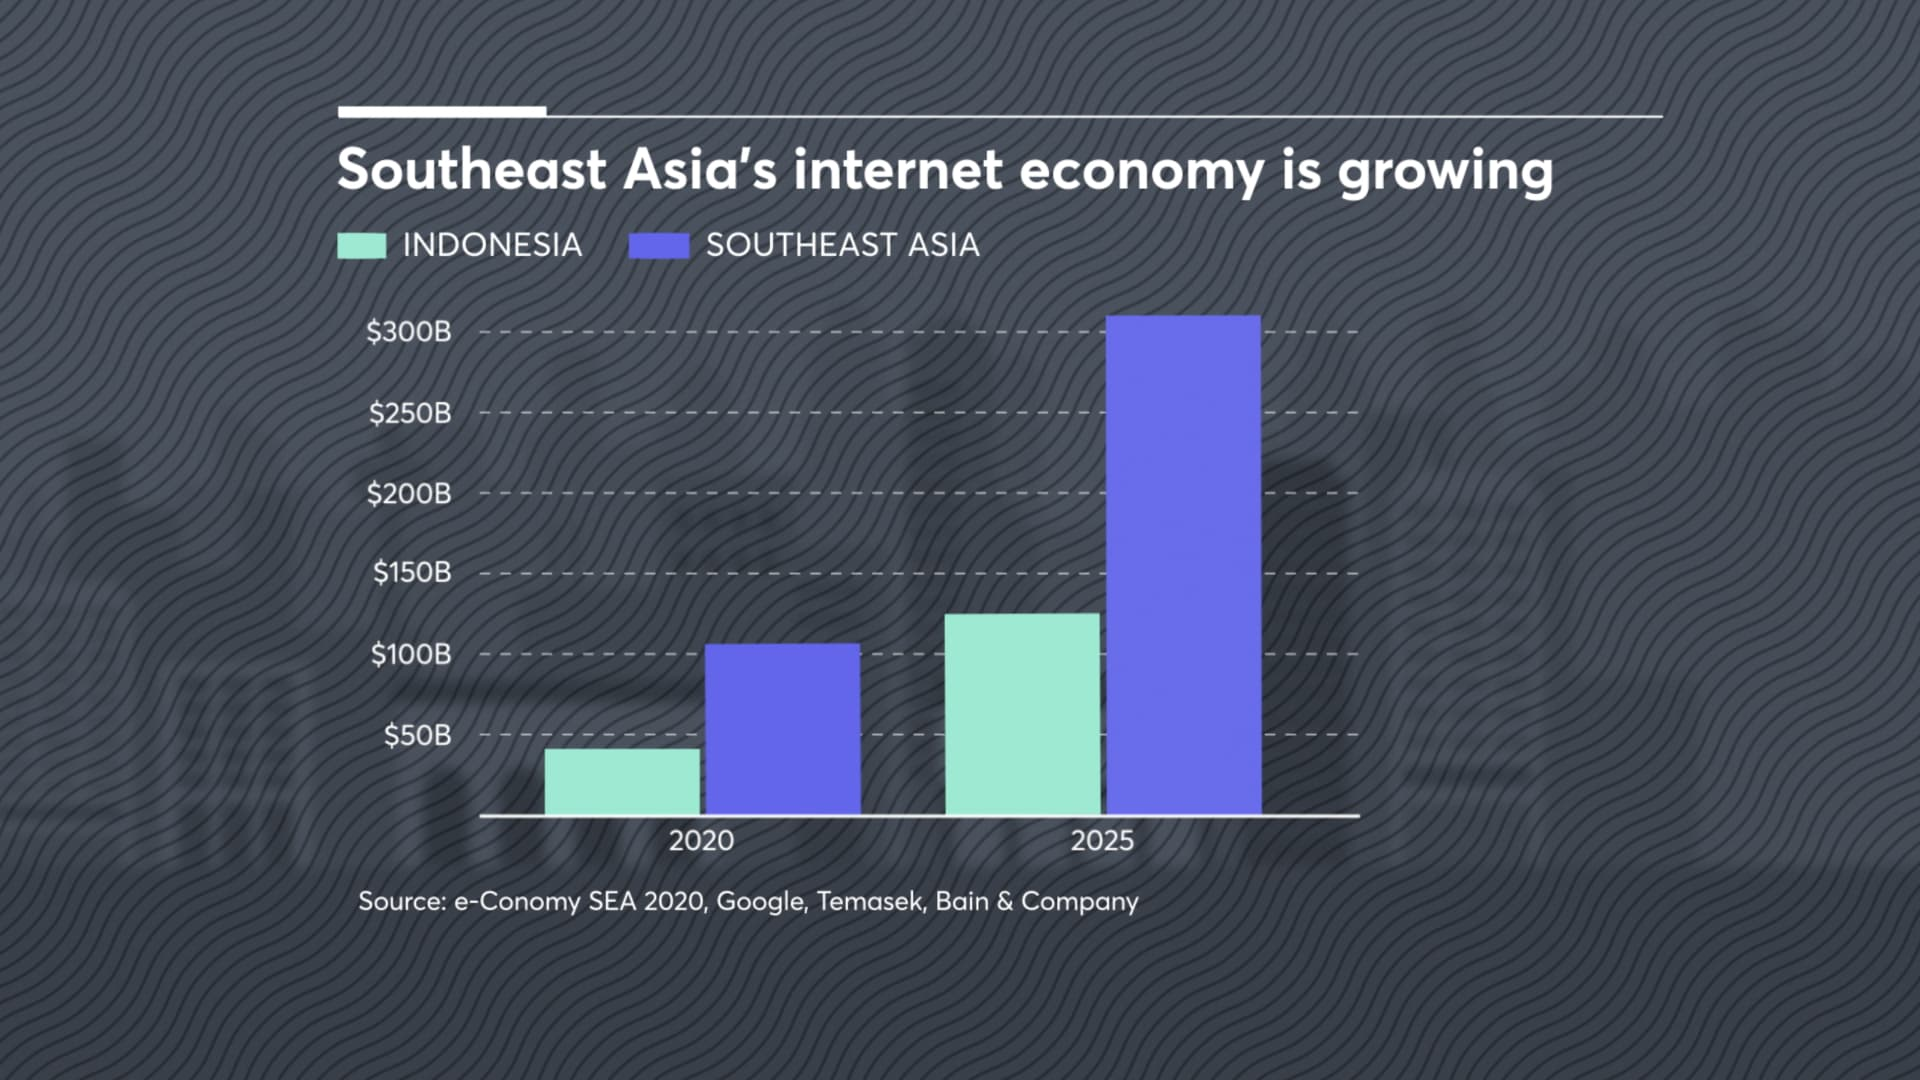 Southeast Asia's digital economy is forecast to triple in value by 2025.